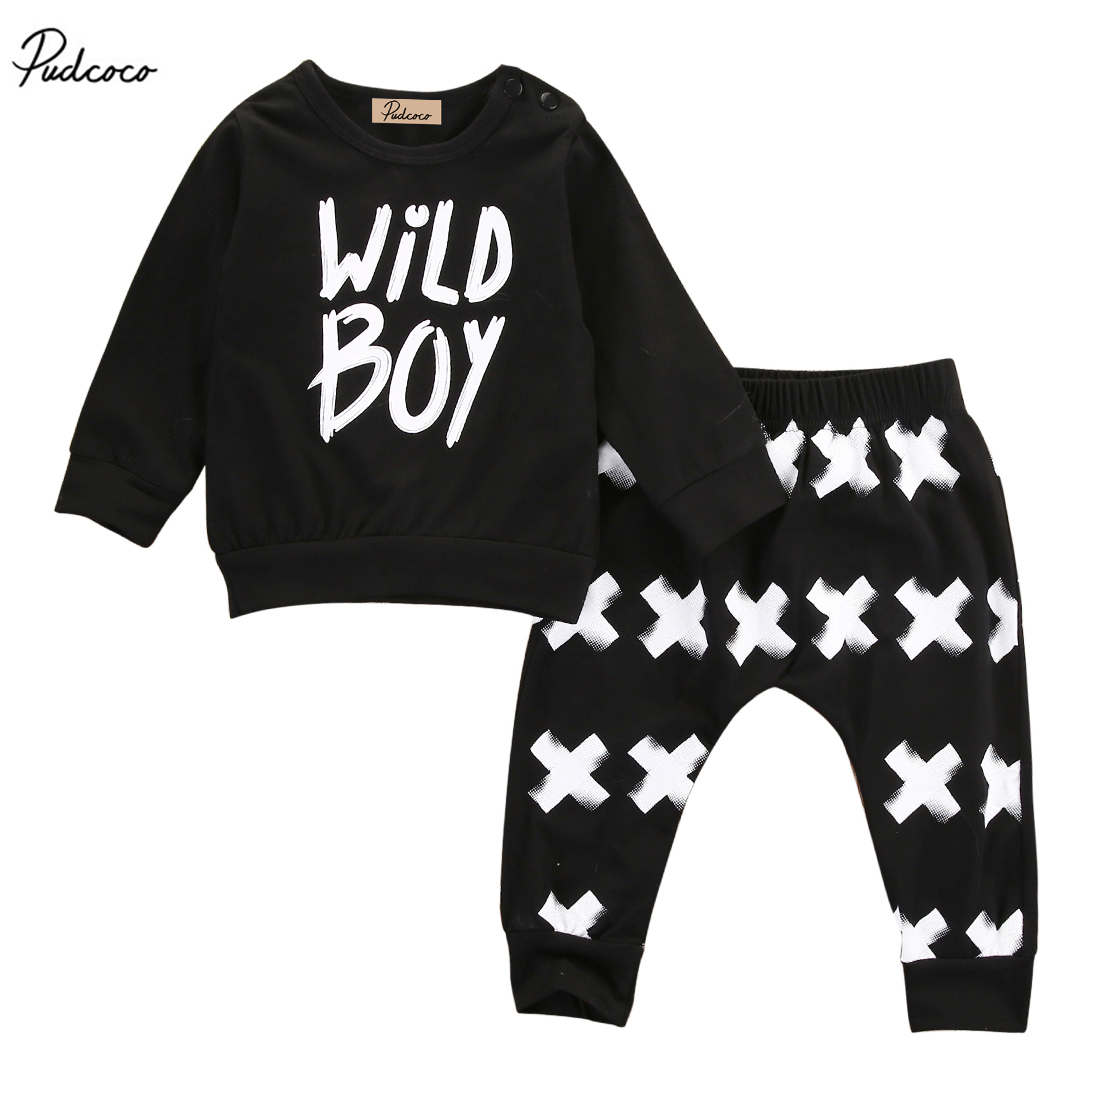 Wild Boy Newborn Baby Boys Infant Long Sleeve T-Shirt Tops X Print Pants Clothes Outfit Set 0-24M baby fox print clothes set newborn baby boy girl long sleeve t shirt tops pants 2017 new hot fall bebes outfit kids clothing set